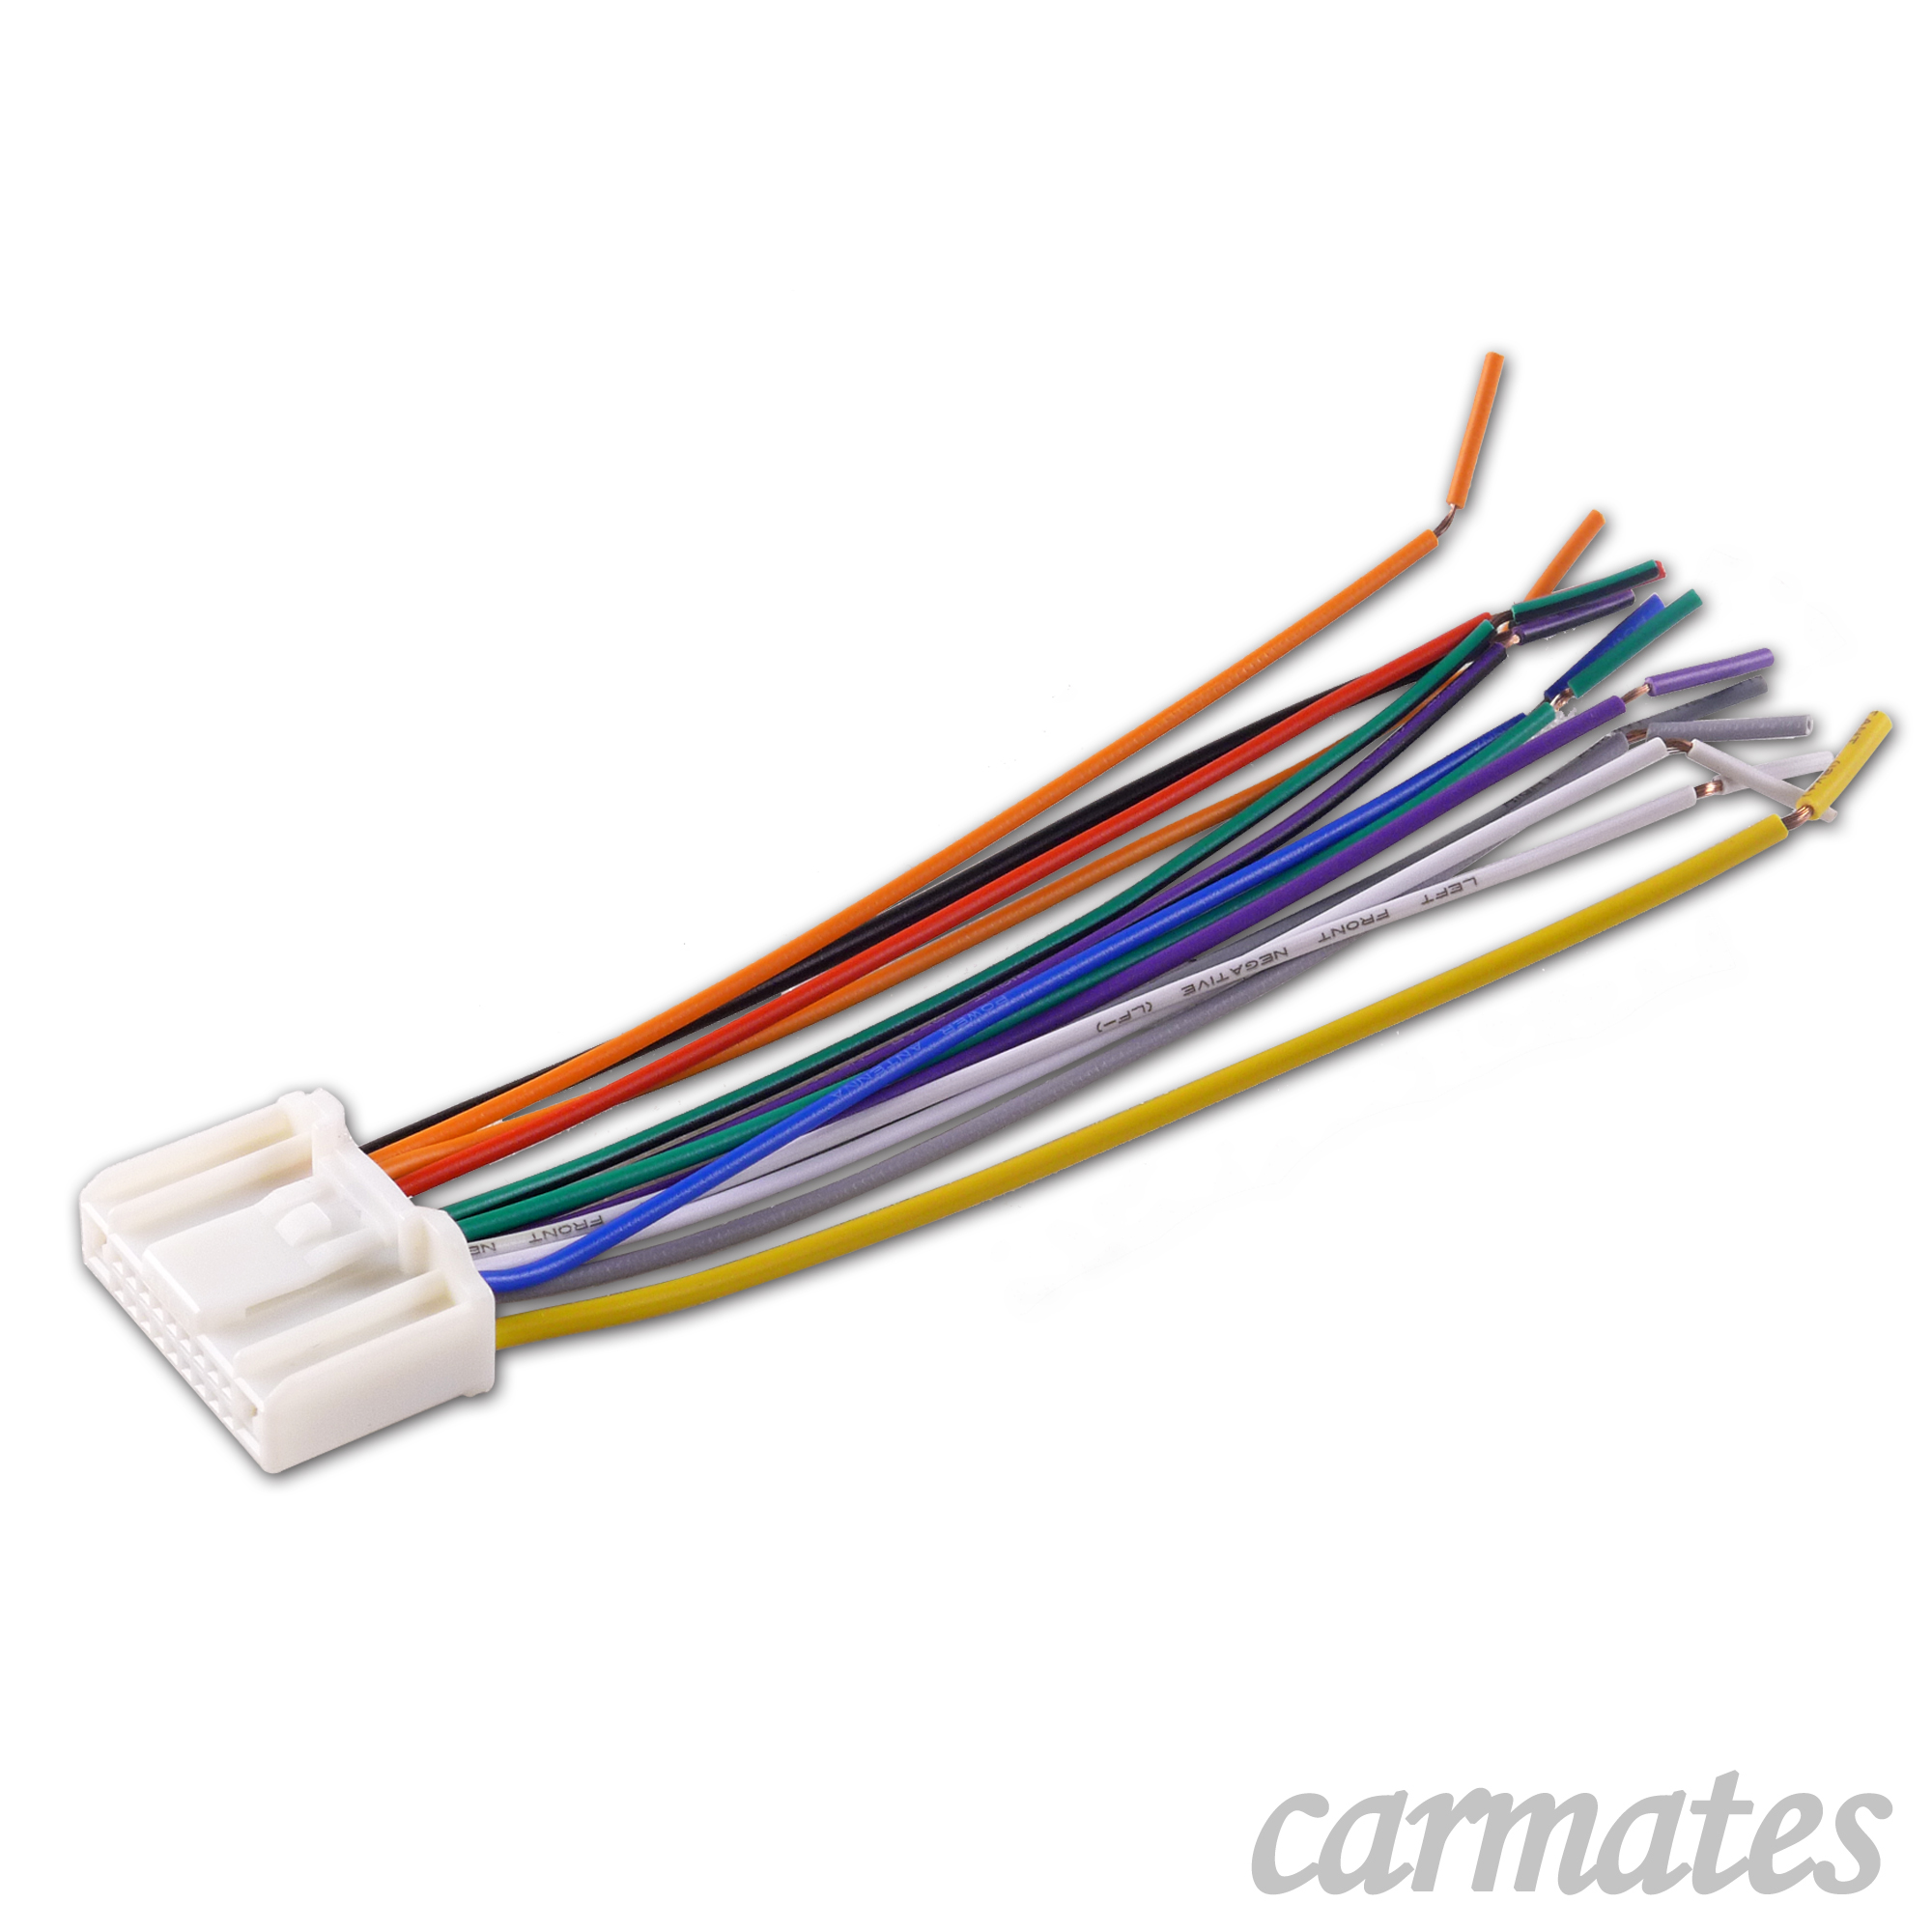 7414611363187033 Usb Car Stereo Wiring Harness on car stereo with ipod integration, car stereo sleeve, car stereo cover, leather dog harness, car stereo alternators, car fuse, car wiring supplies, car speaker, 95 sc400 stereo harness,